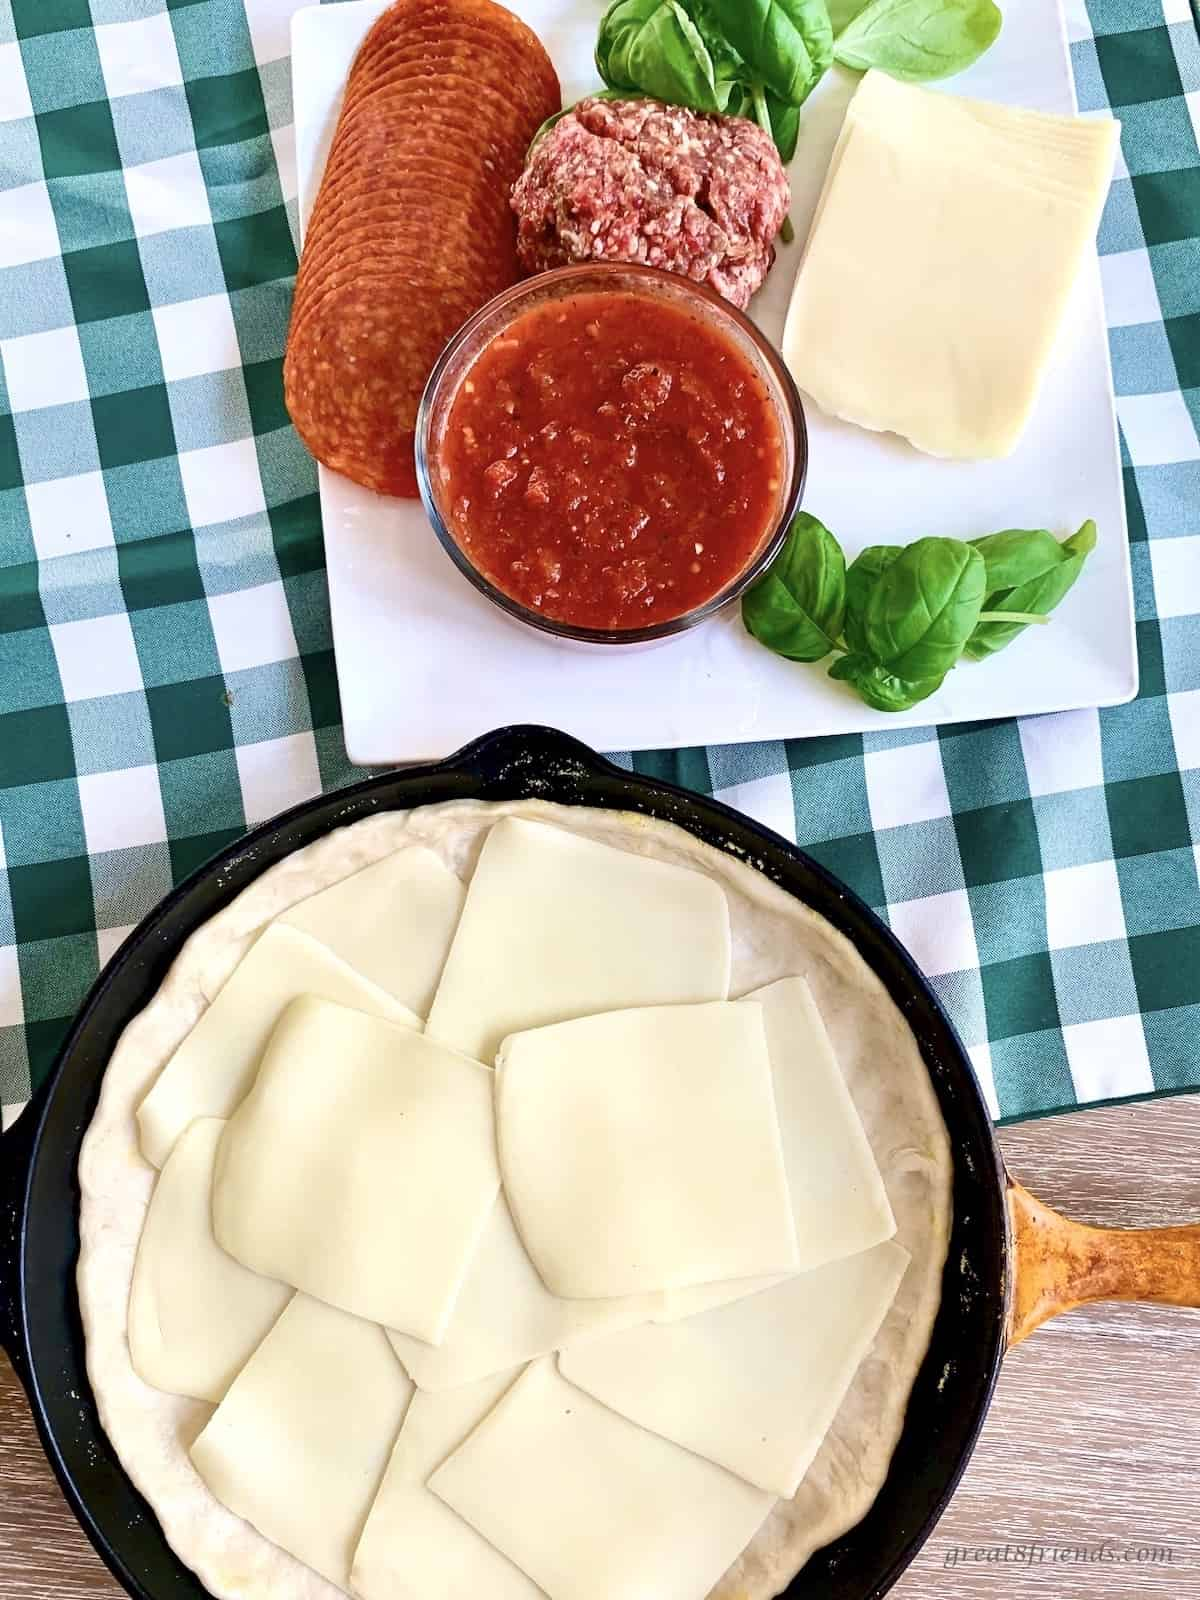 A cast iron skillet layered with pizza dough and mozzarella slices. Other ingredients on the side are pizza sauce, pepperoni, sausage, mozzarella slices and basil.